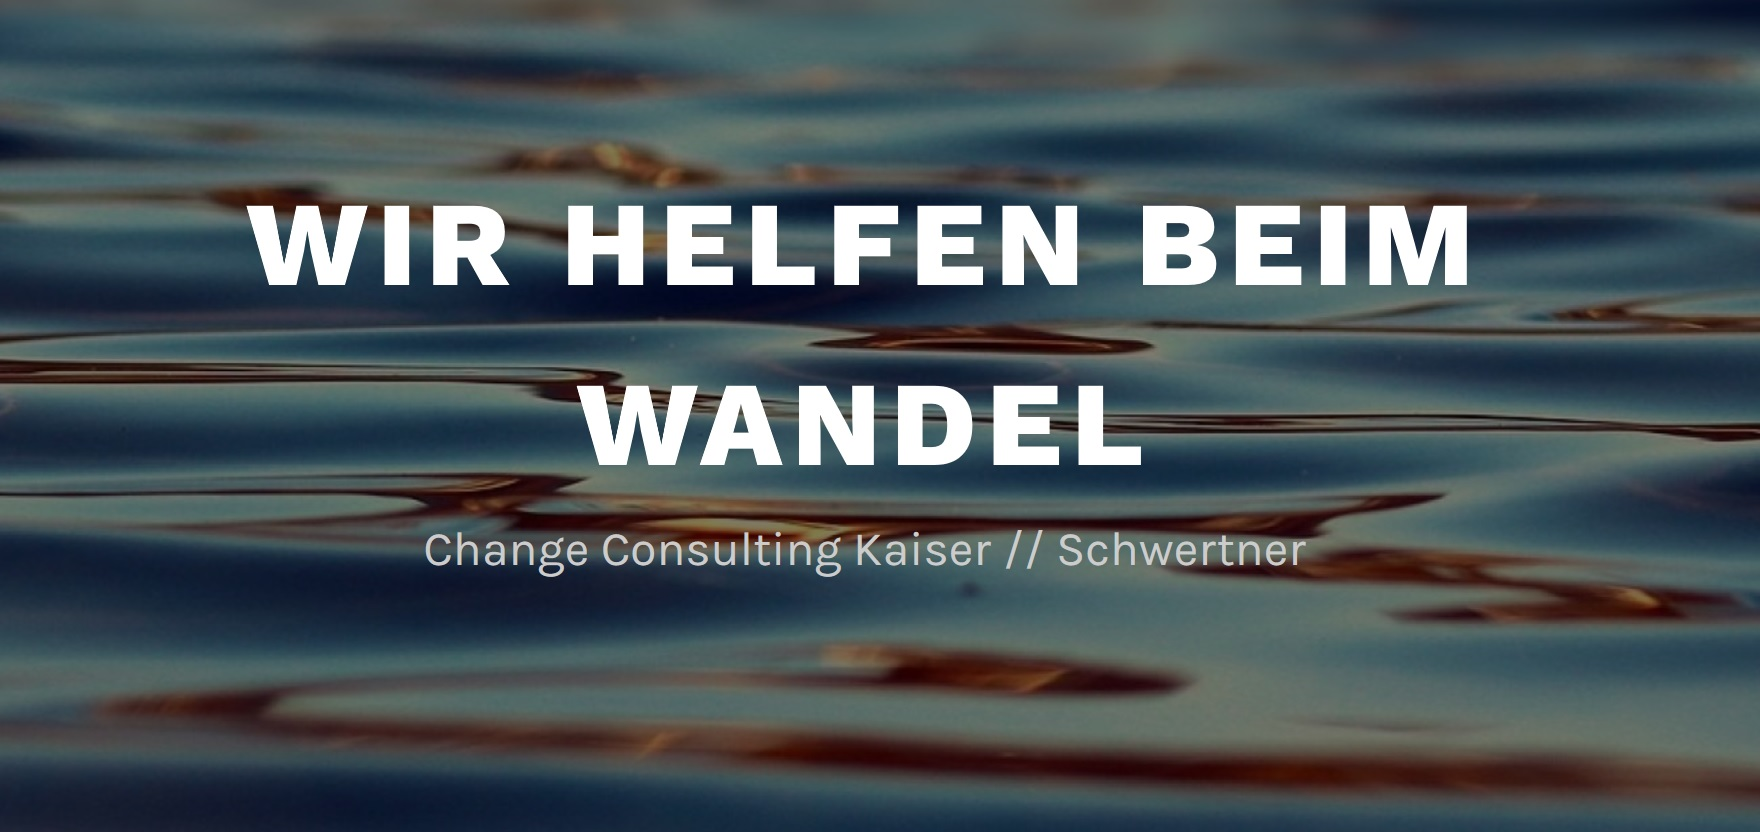 Change Consulting Kaiser//Schwertner